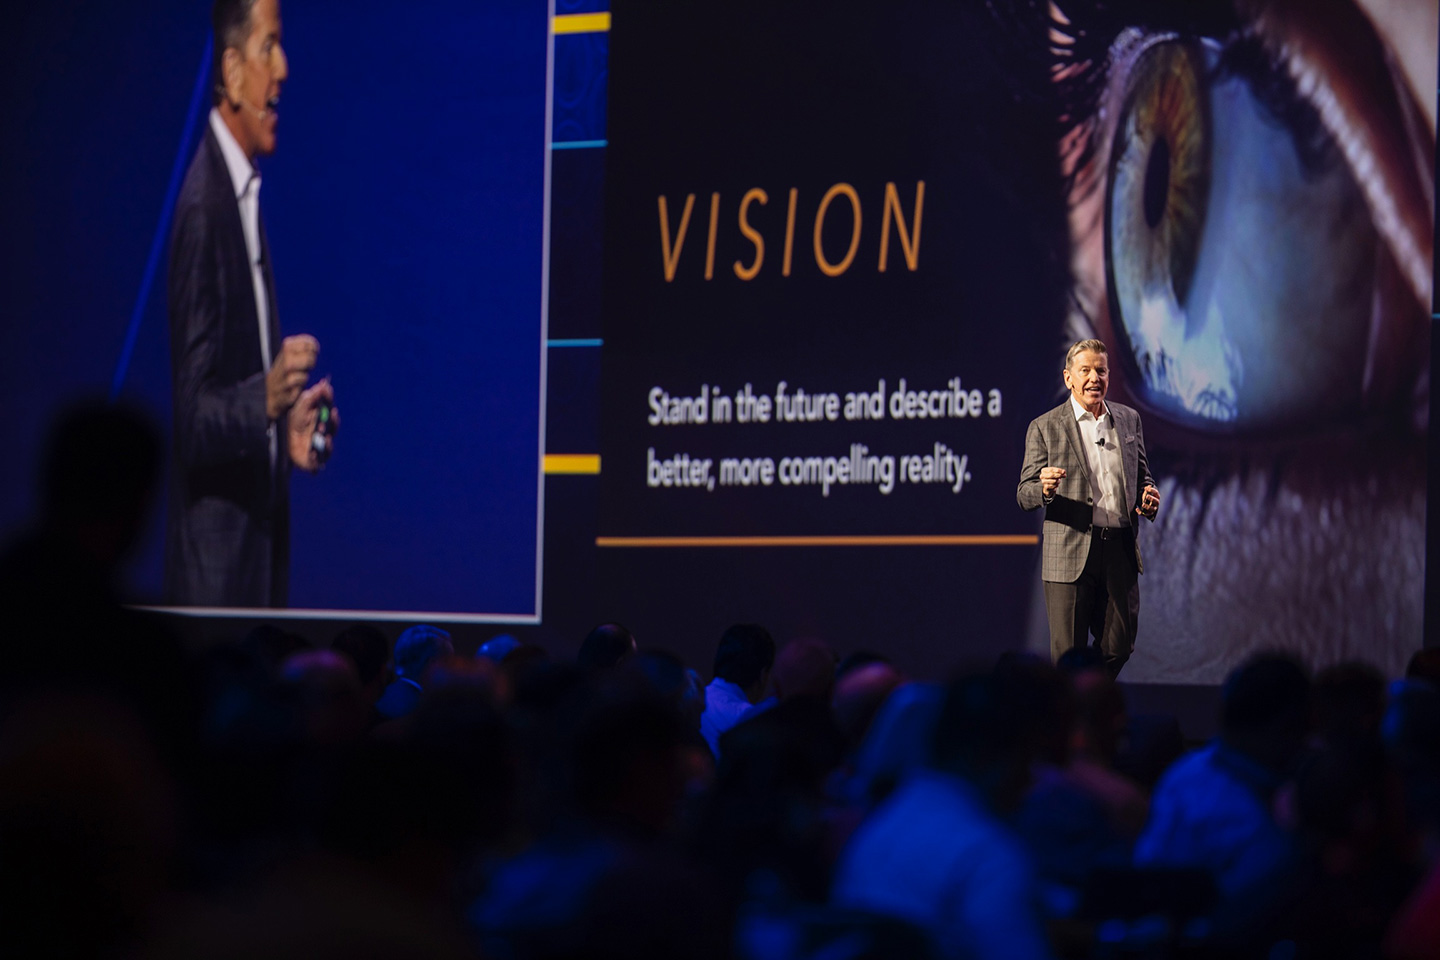 Wide screen projection allows your amazing content and keynote speaker to shine!